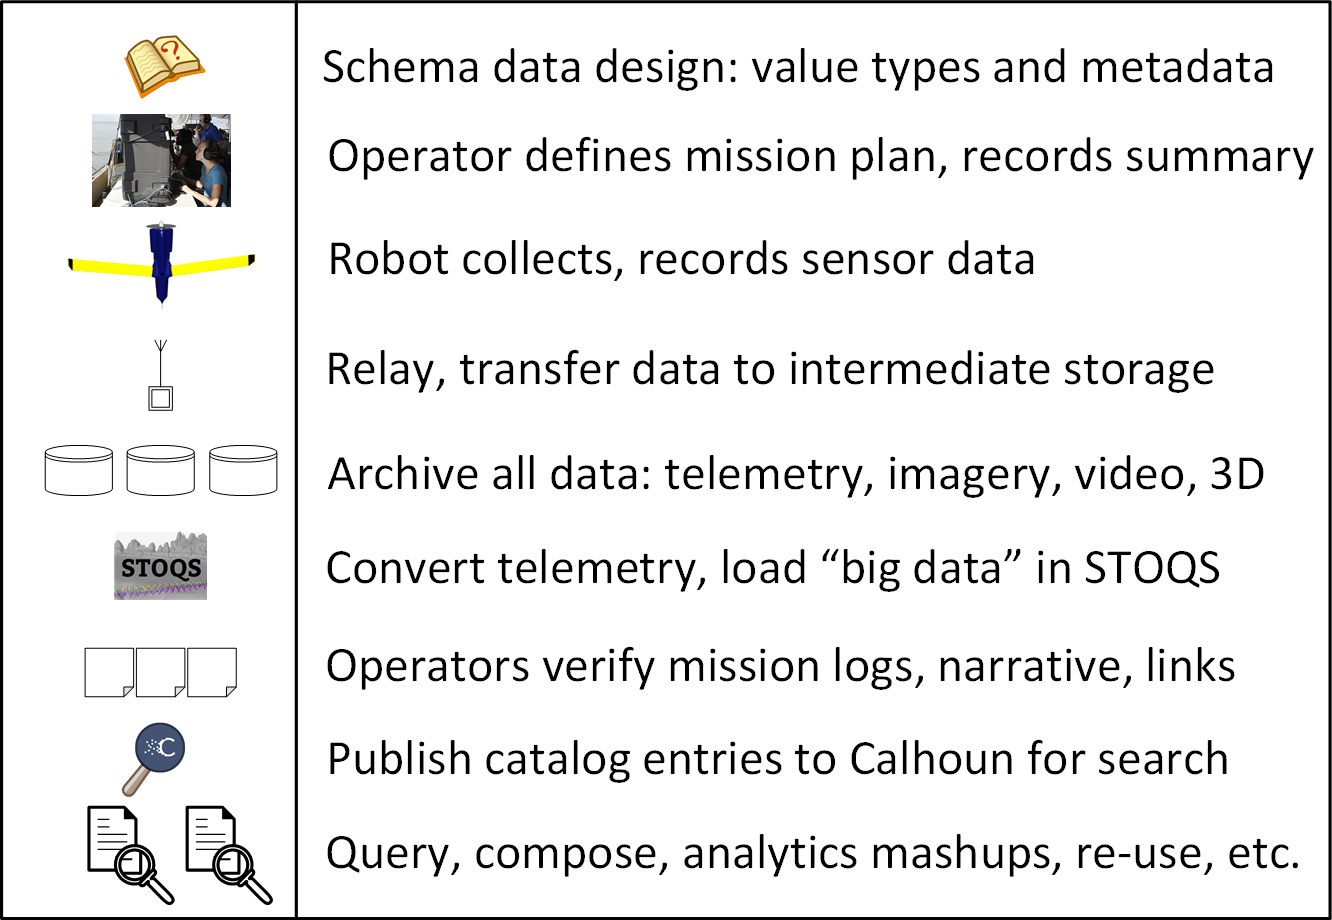 Information flow for robodata missions